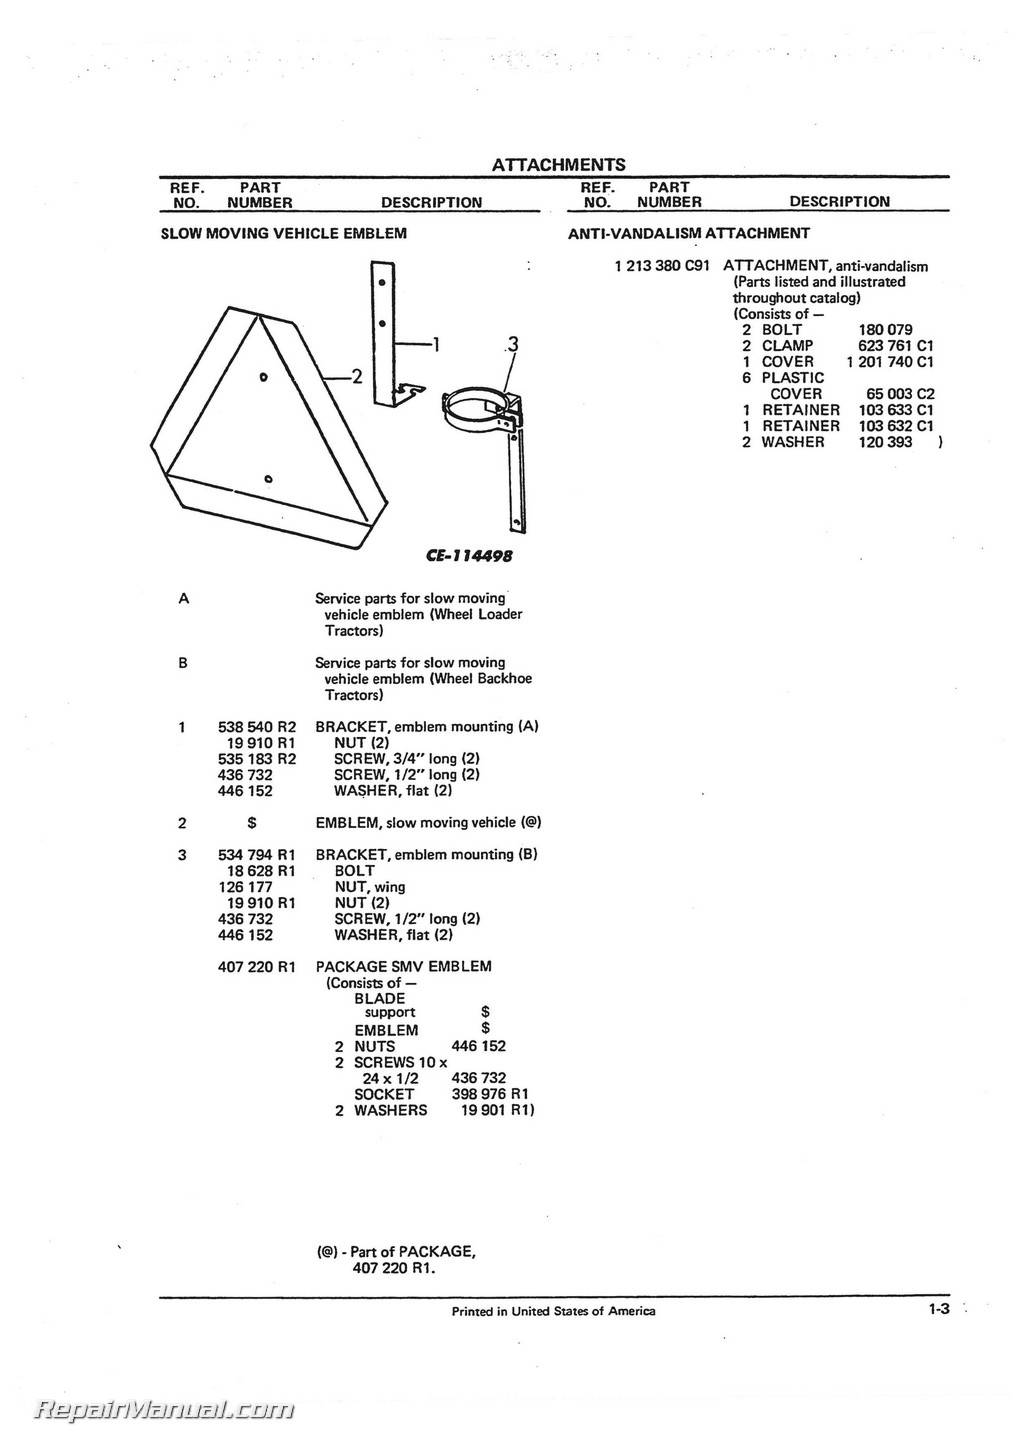 international harvester 260 a tractor loader backhoe parts manual international harvester 260 a tractor loader backhoe parts manual page 2